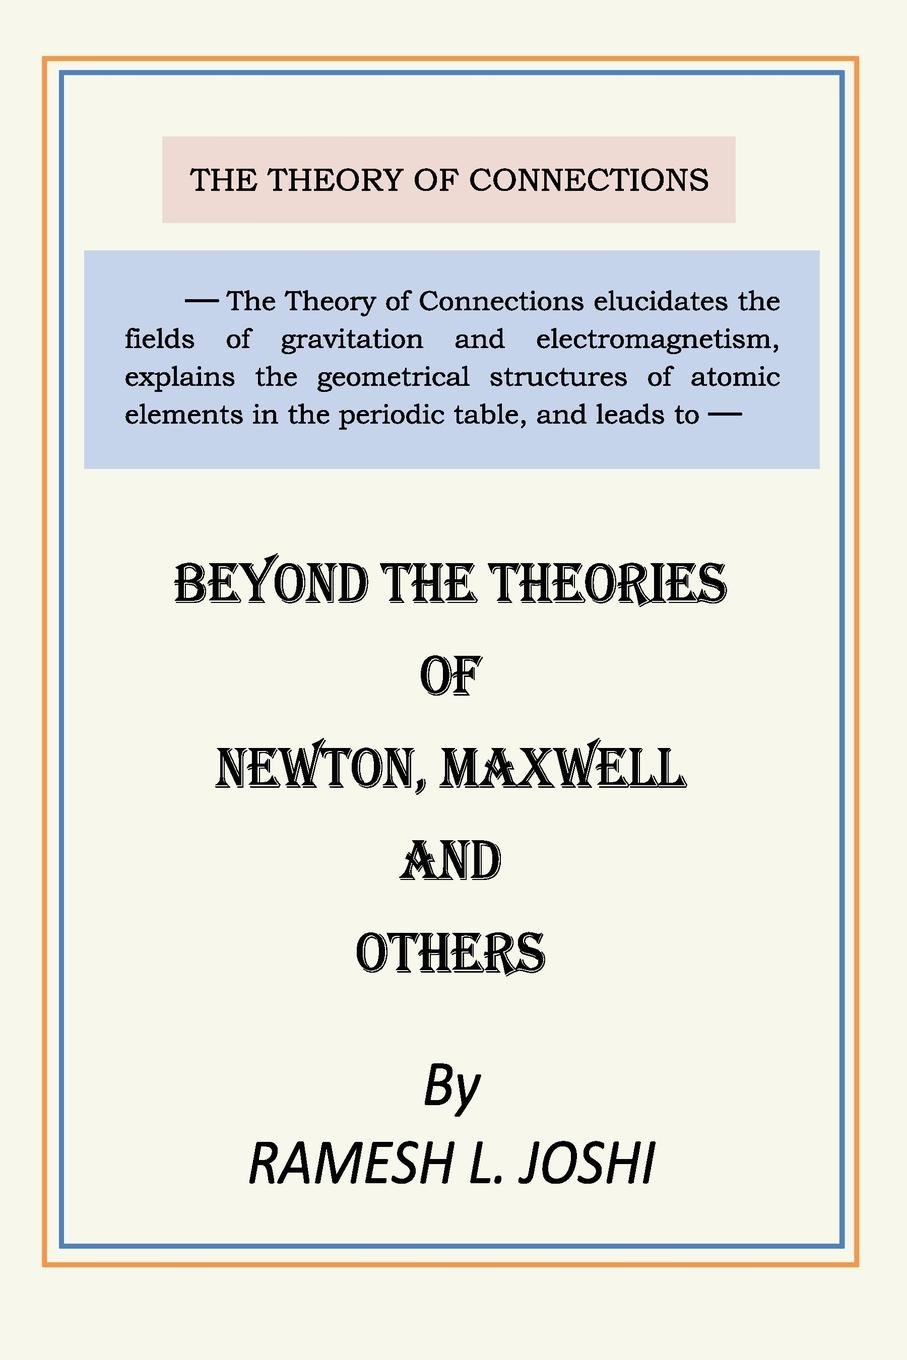 цены Ph.D. P.E. Ramesh L. Joshi Beyond The Theories of Newton, Maxwell and others